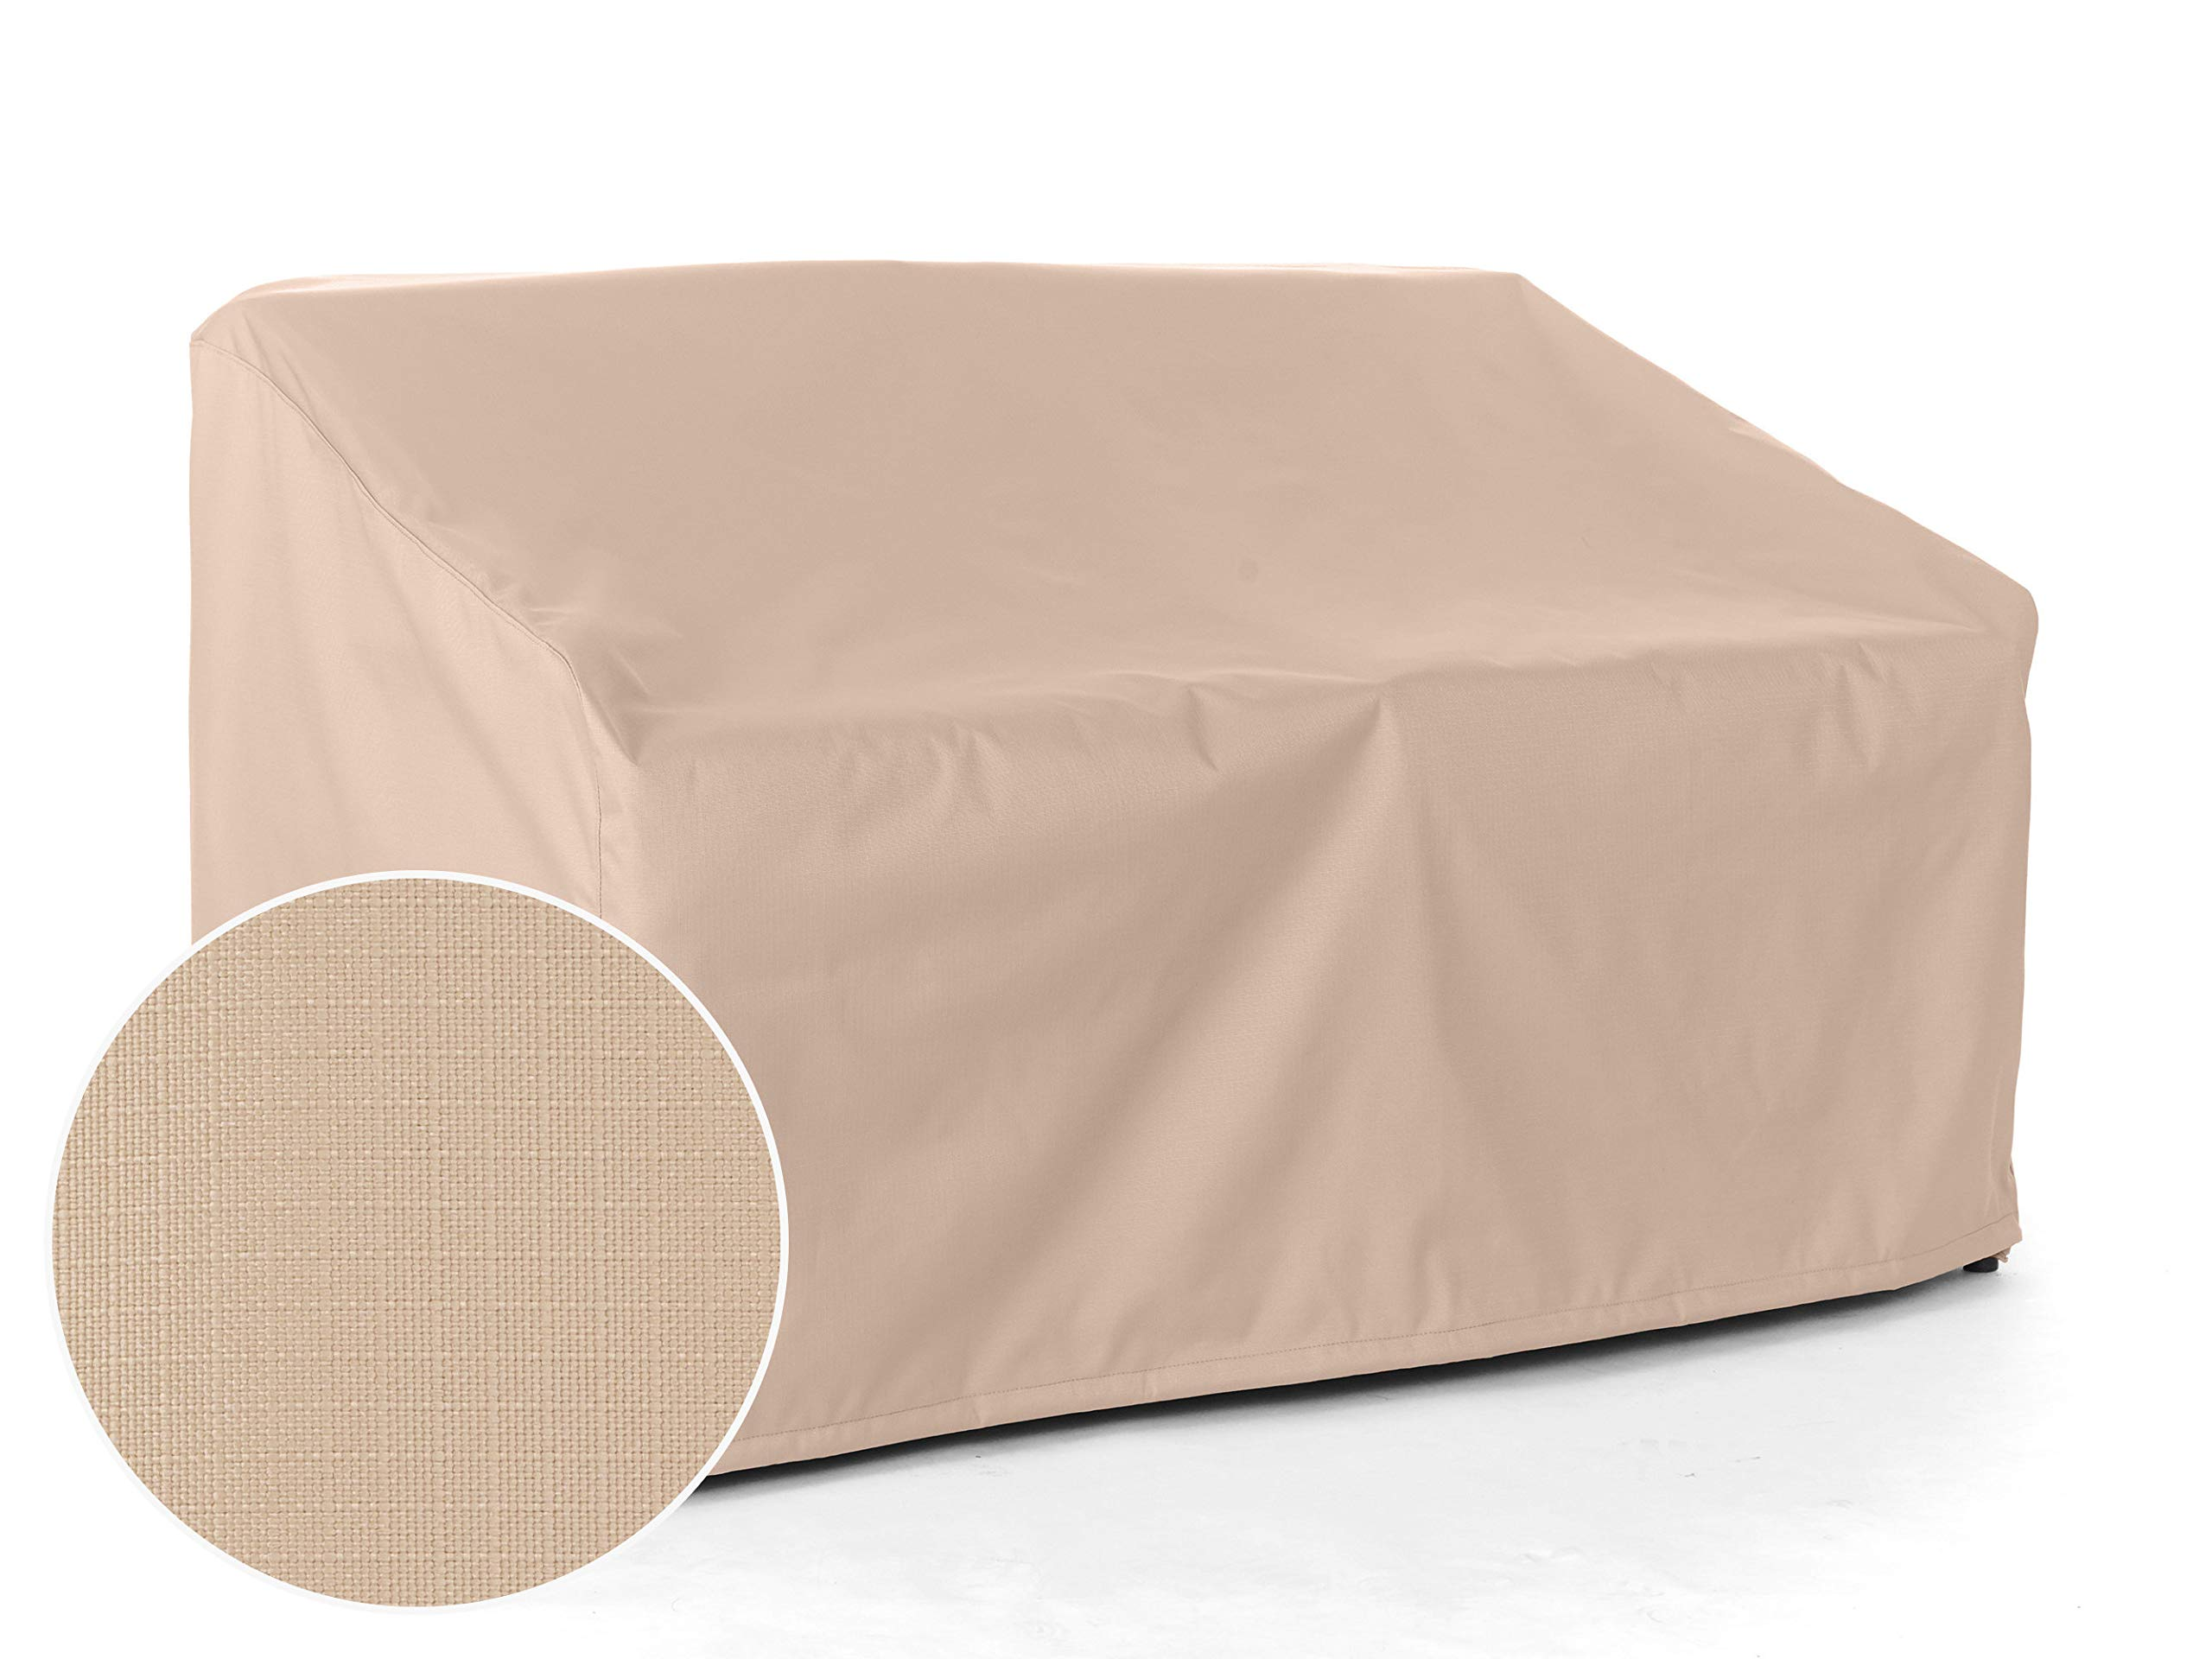 CoverMates - Outdoor Patio Bench Covers - Fits 58 in Width, 40 in Depth and 40 in Height - Ultima Ripstop - 600D Fade Resistant Poly - Breathable Covered Ventilation - 7 YR Warranty - Ripstop Tan by CoverMates (Image #8)